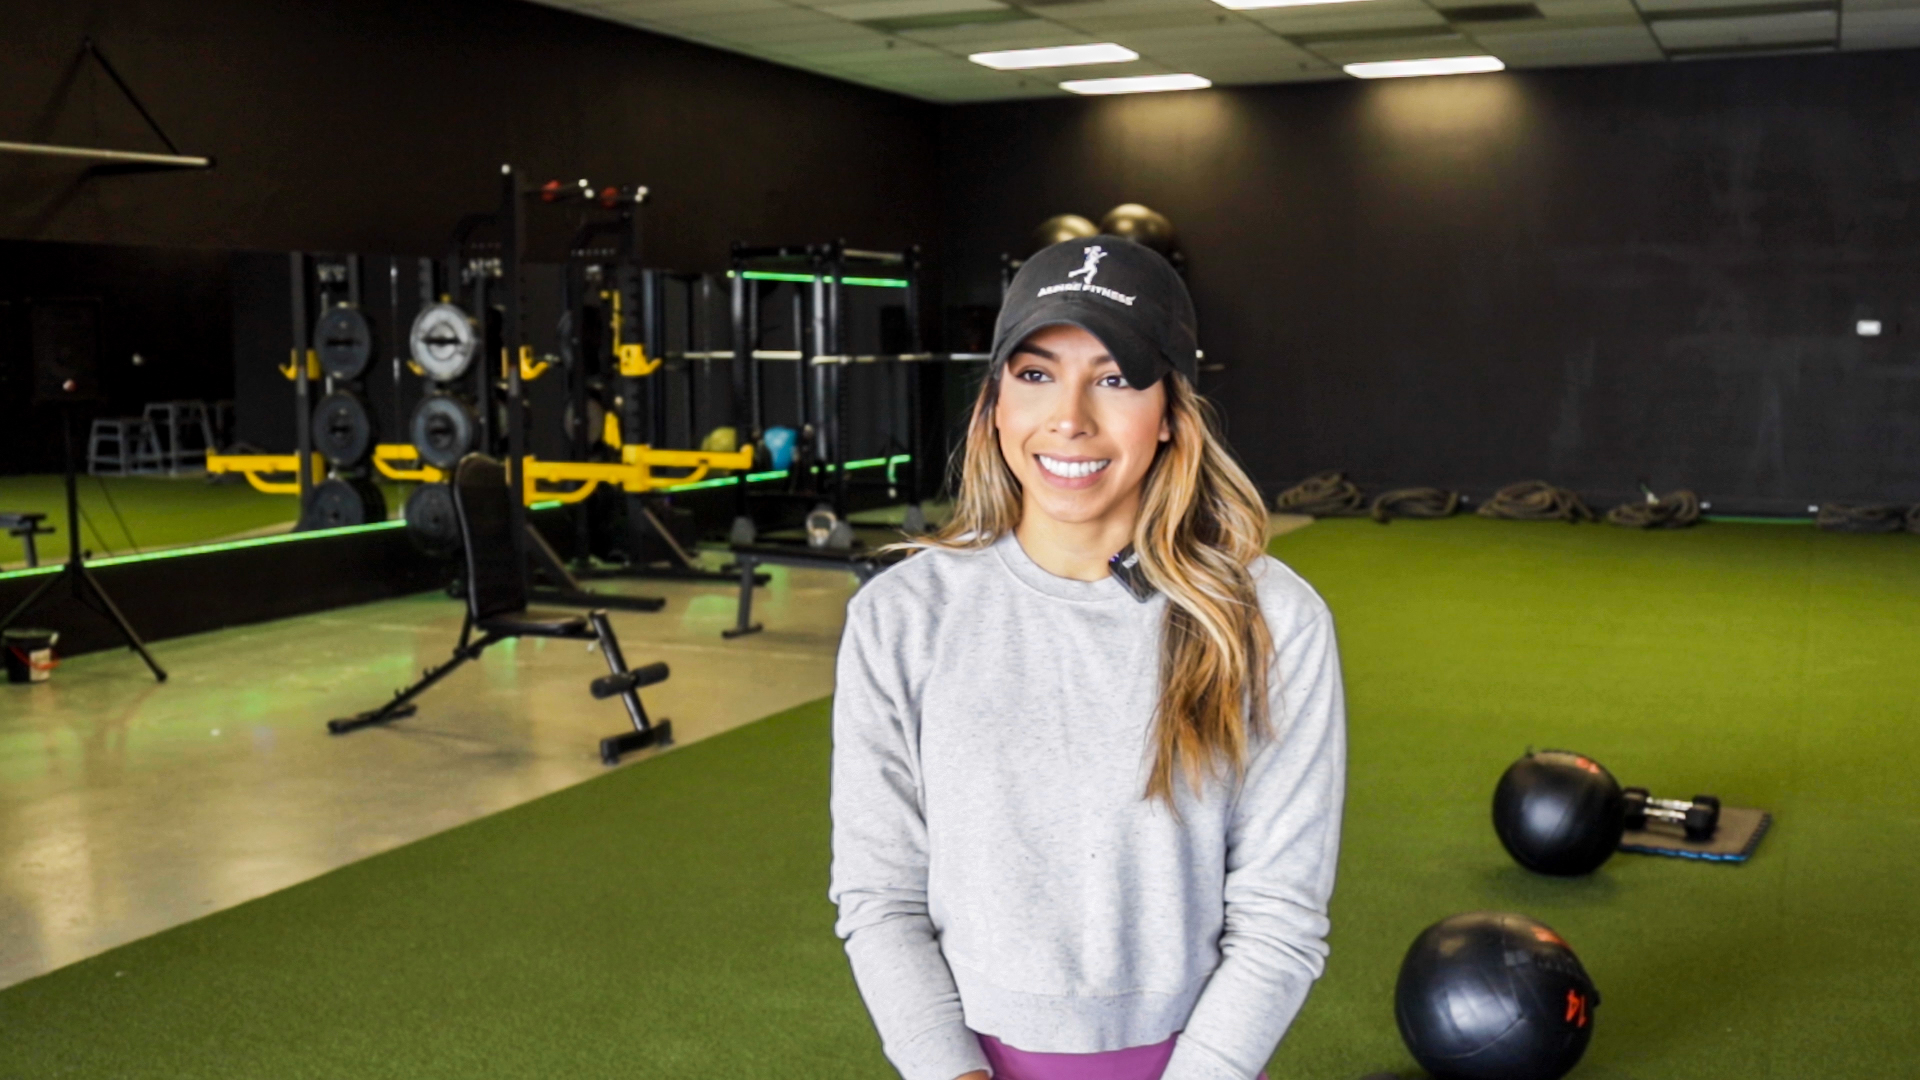 Alejandra Salas, owner of Reno Aspire Fitness, at her gym